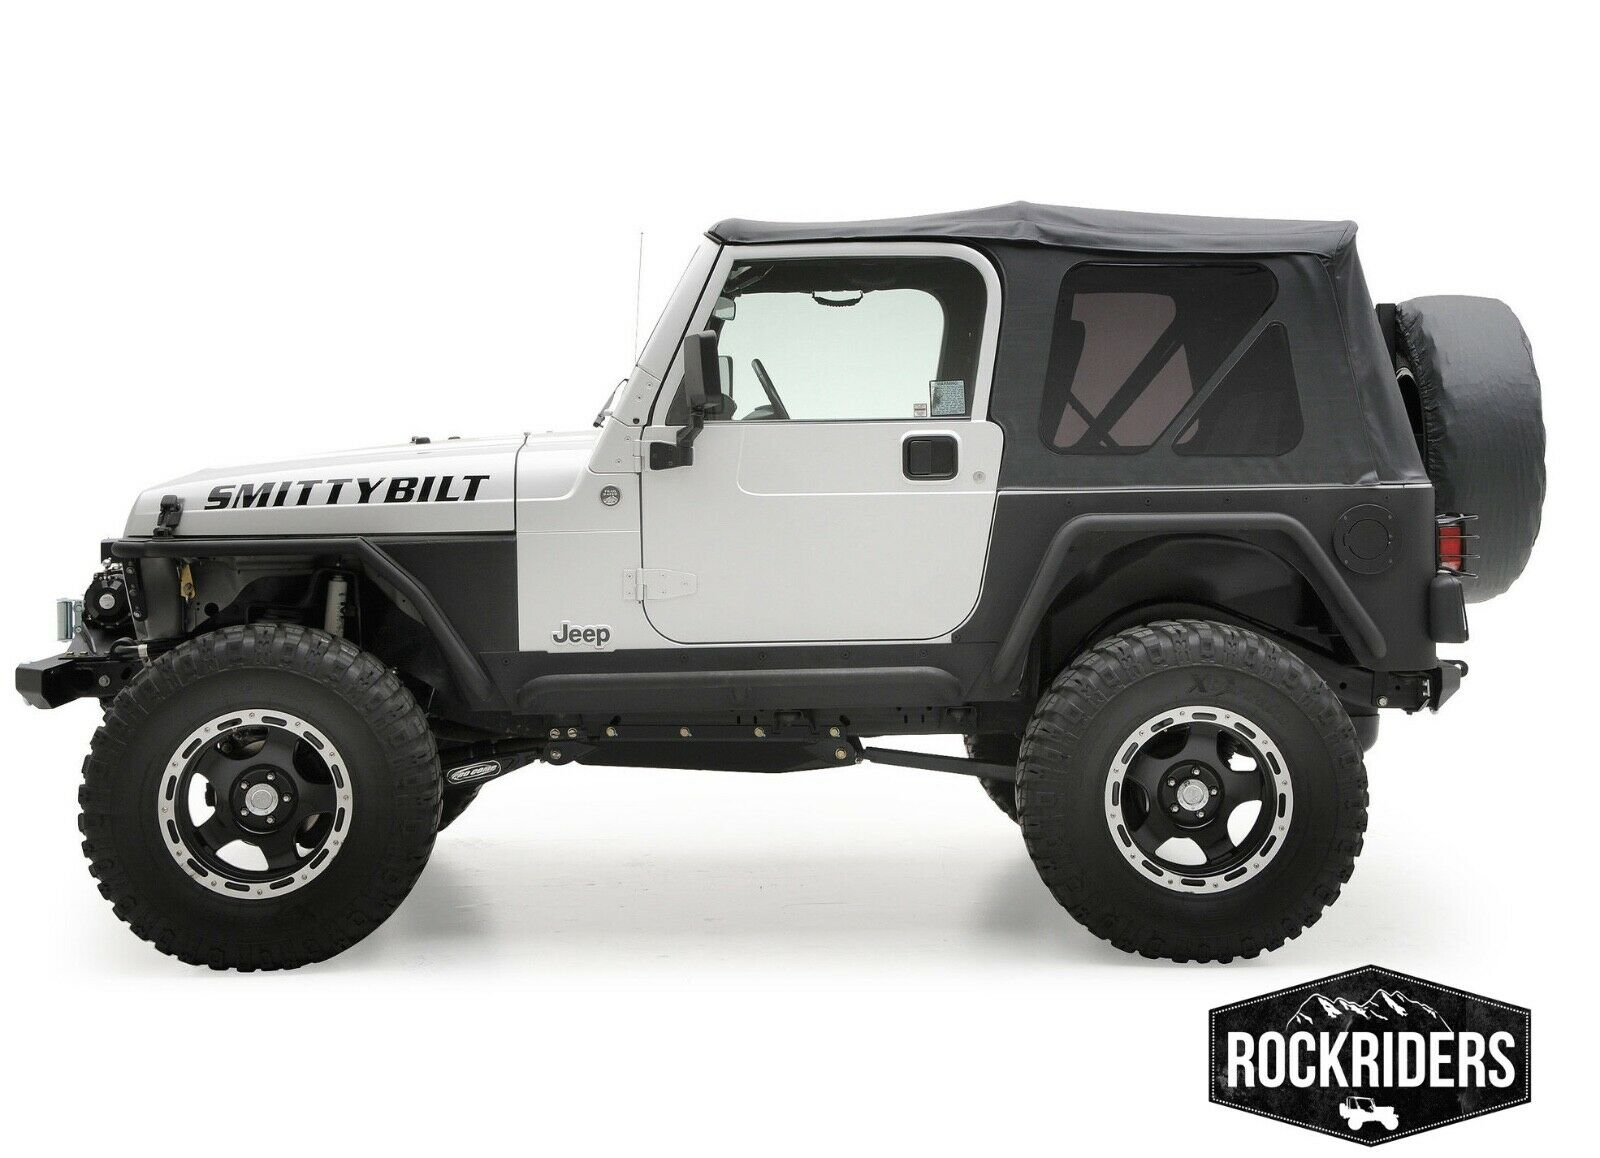 Jeep Wrangler Soft Top >> 97 06 Jeep Wrangler Tj Soft Top With Rear Tinted Windows 3 Year Warranty 9971235